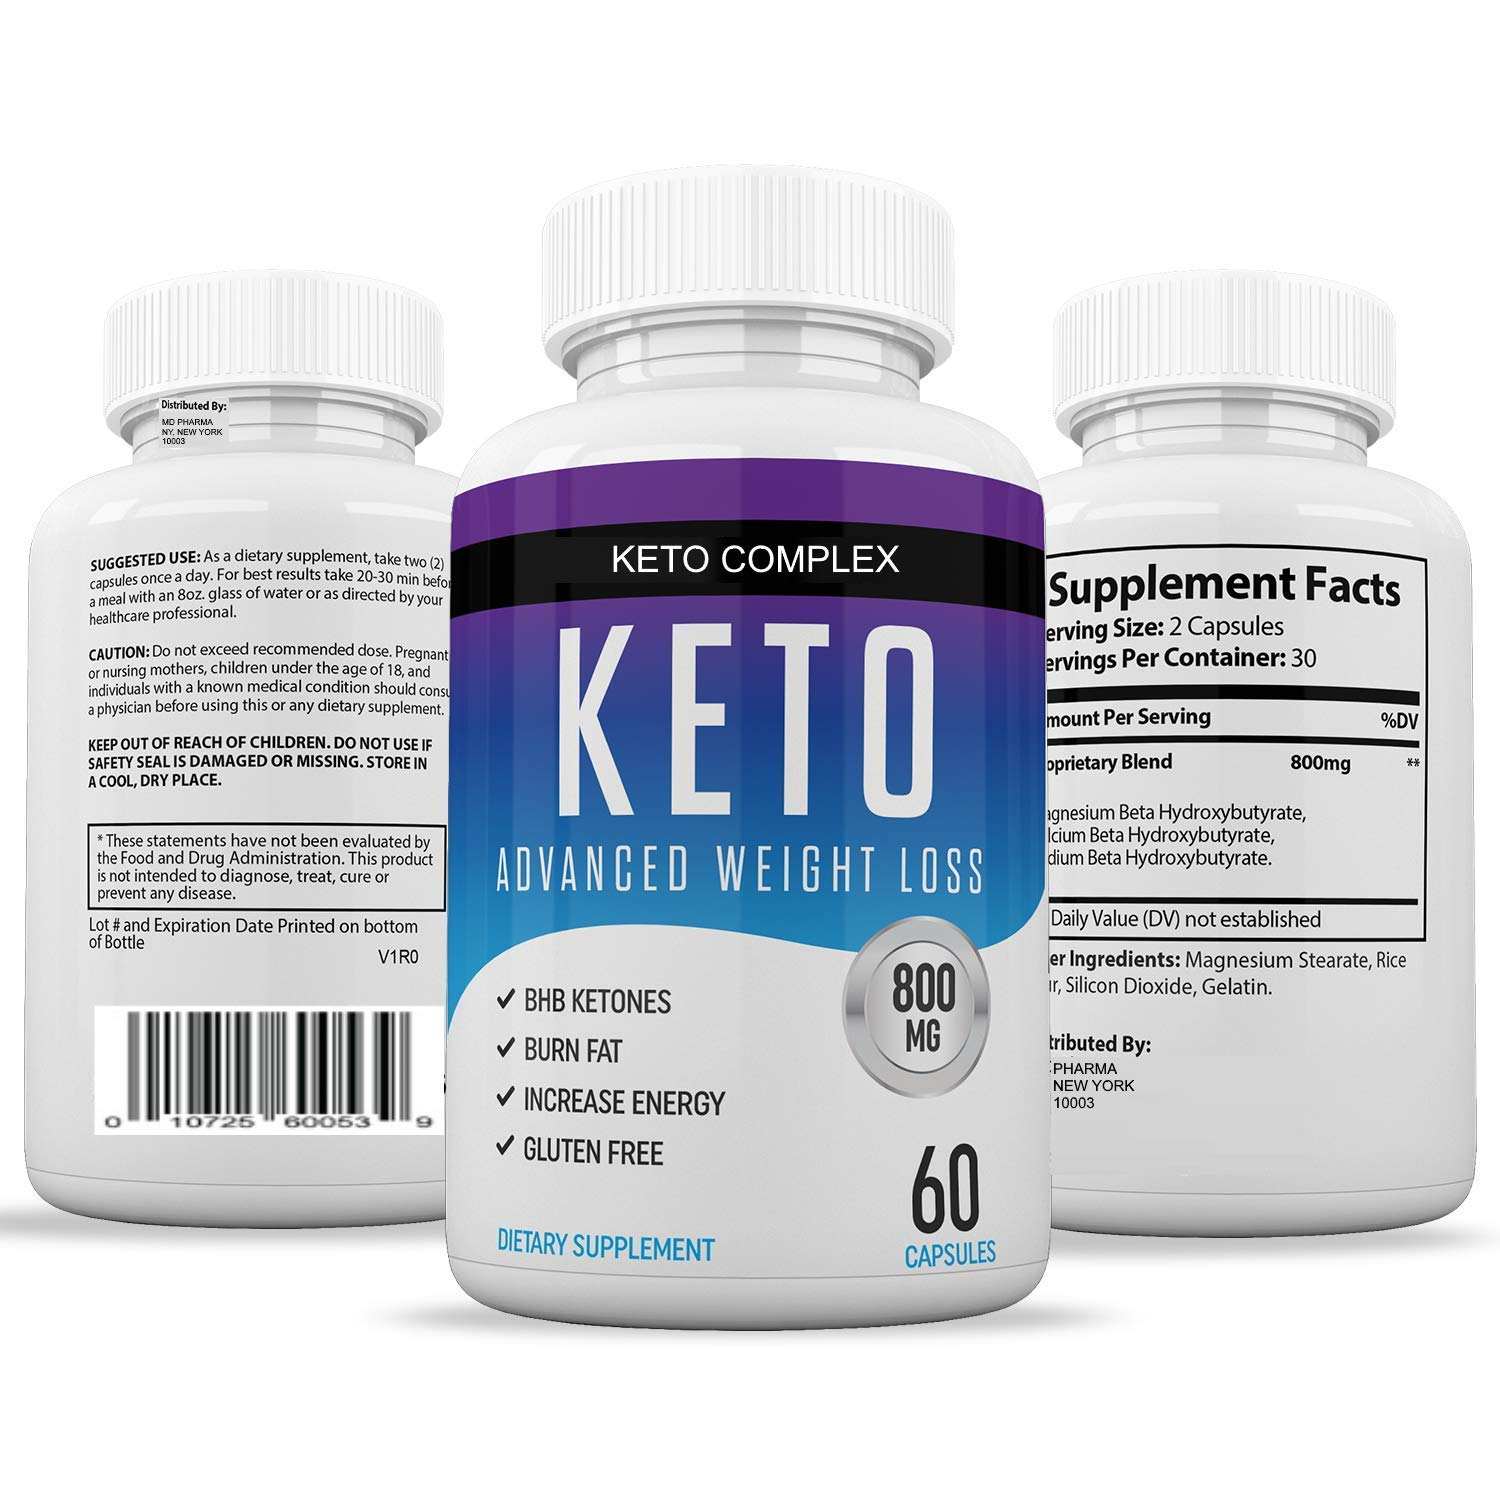 Keto Diet Pills for Men and Women - Helps Weight Loss & Burns Fat Quicker - Get Fit, Get Energized and Clear Your Mind - 60 Easy-Swallow Capsules Per Bottle for Keto Weight Loss by Chi Nutrition